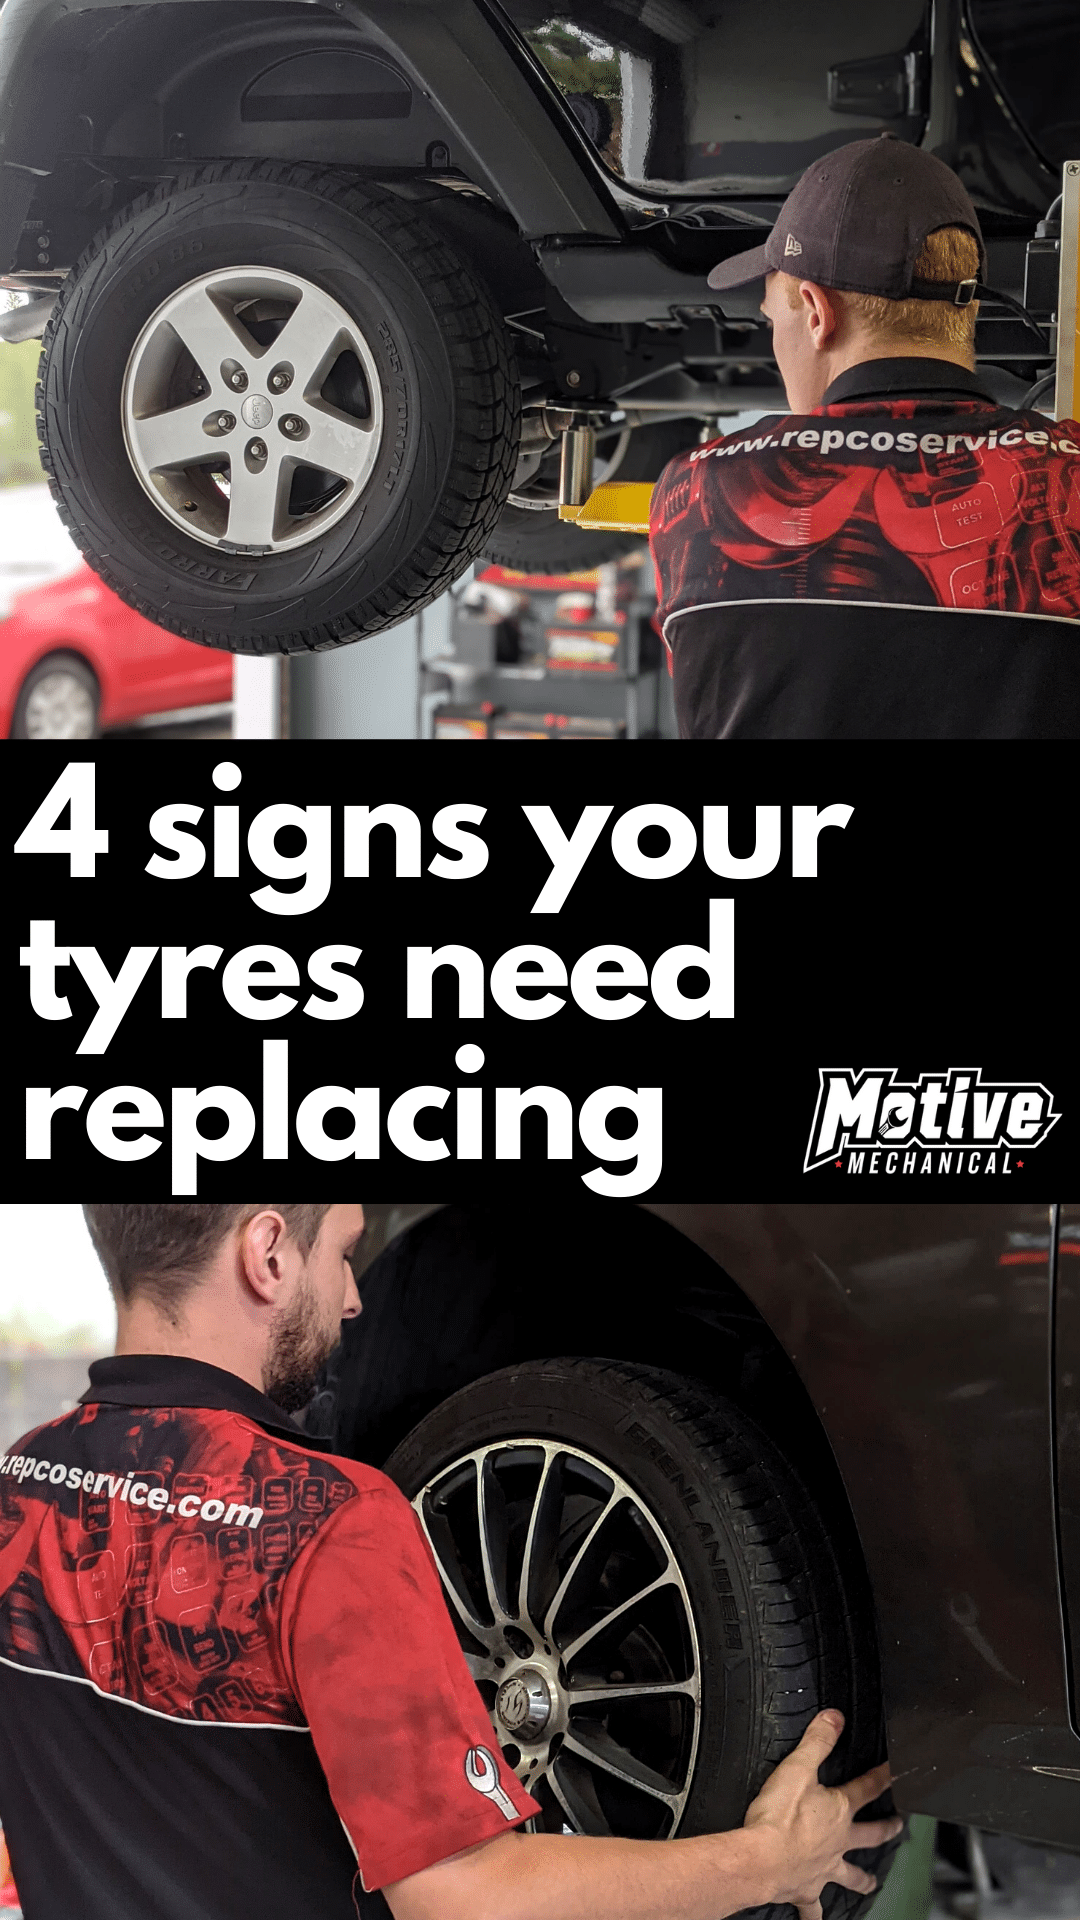 tyres-replacing-signs-motive-mechanical